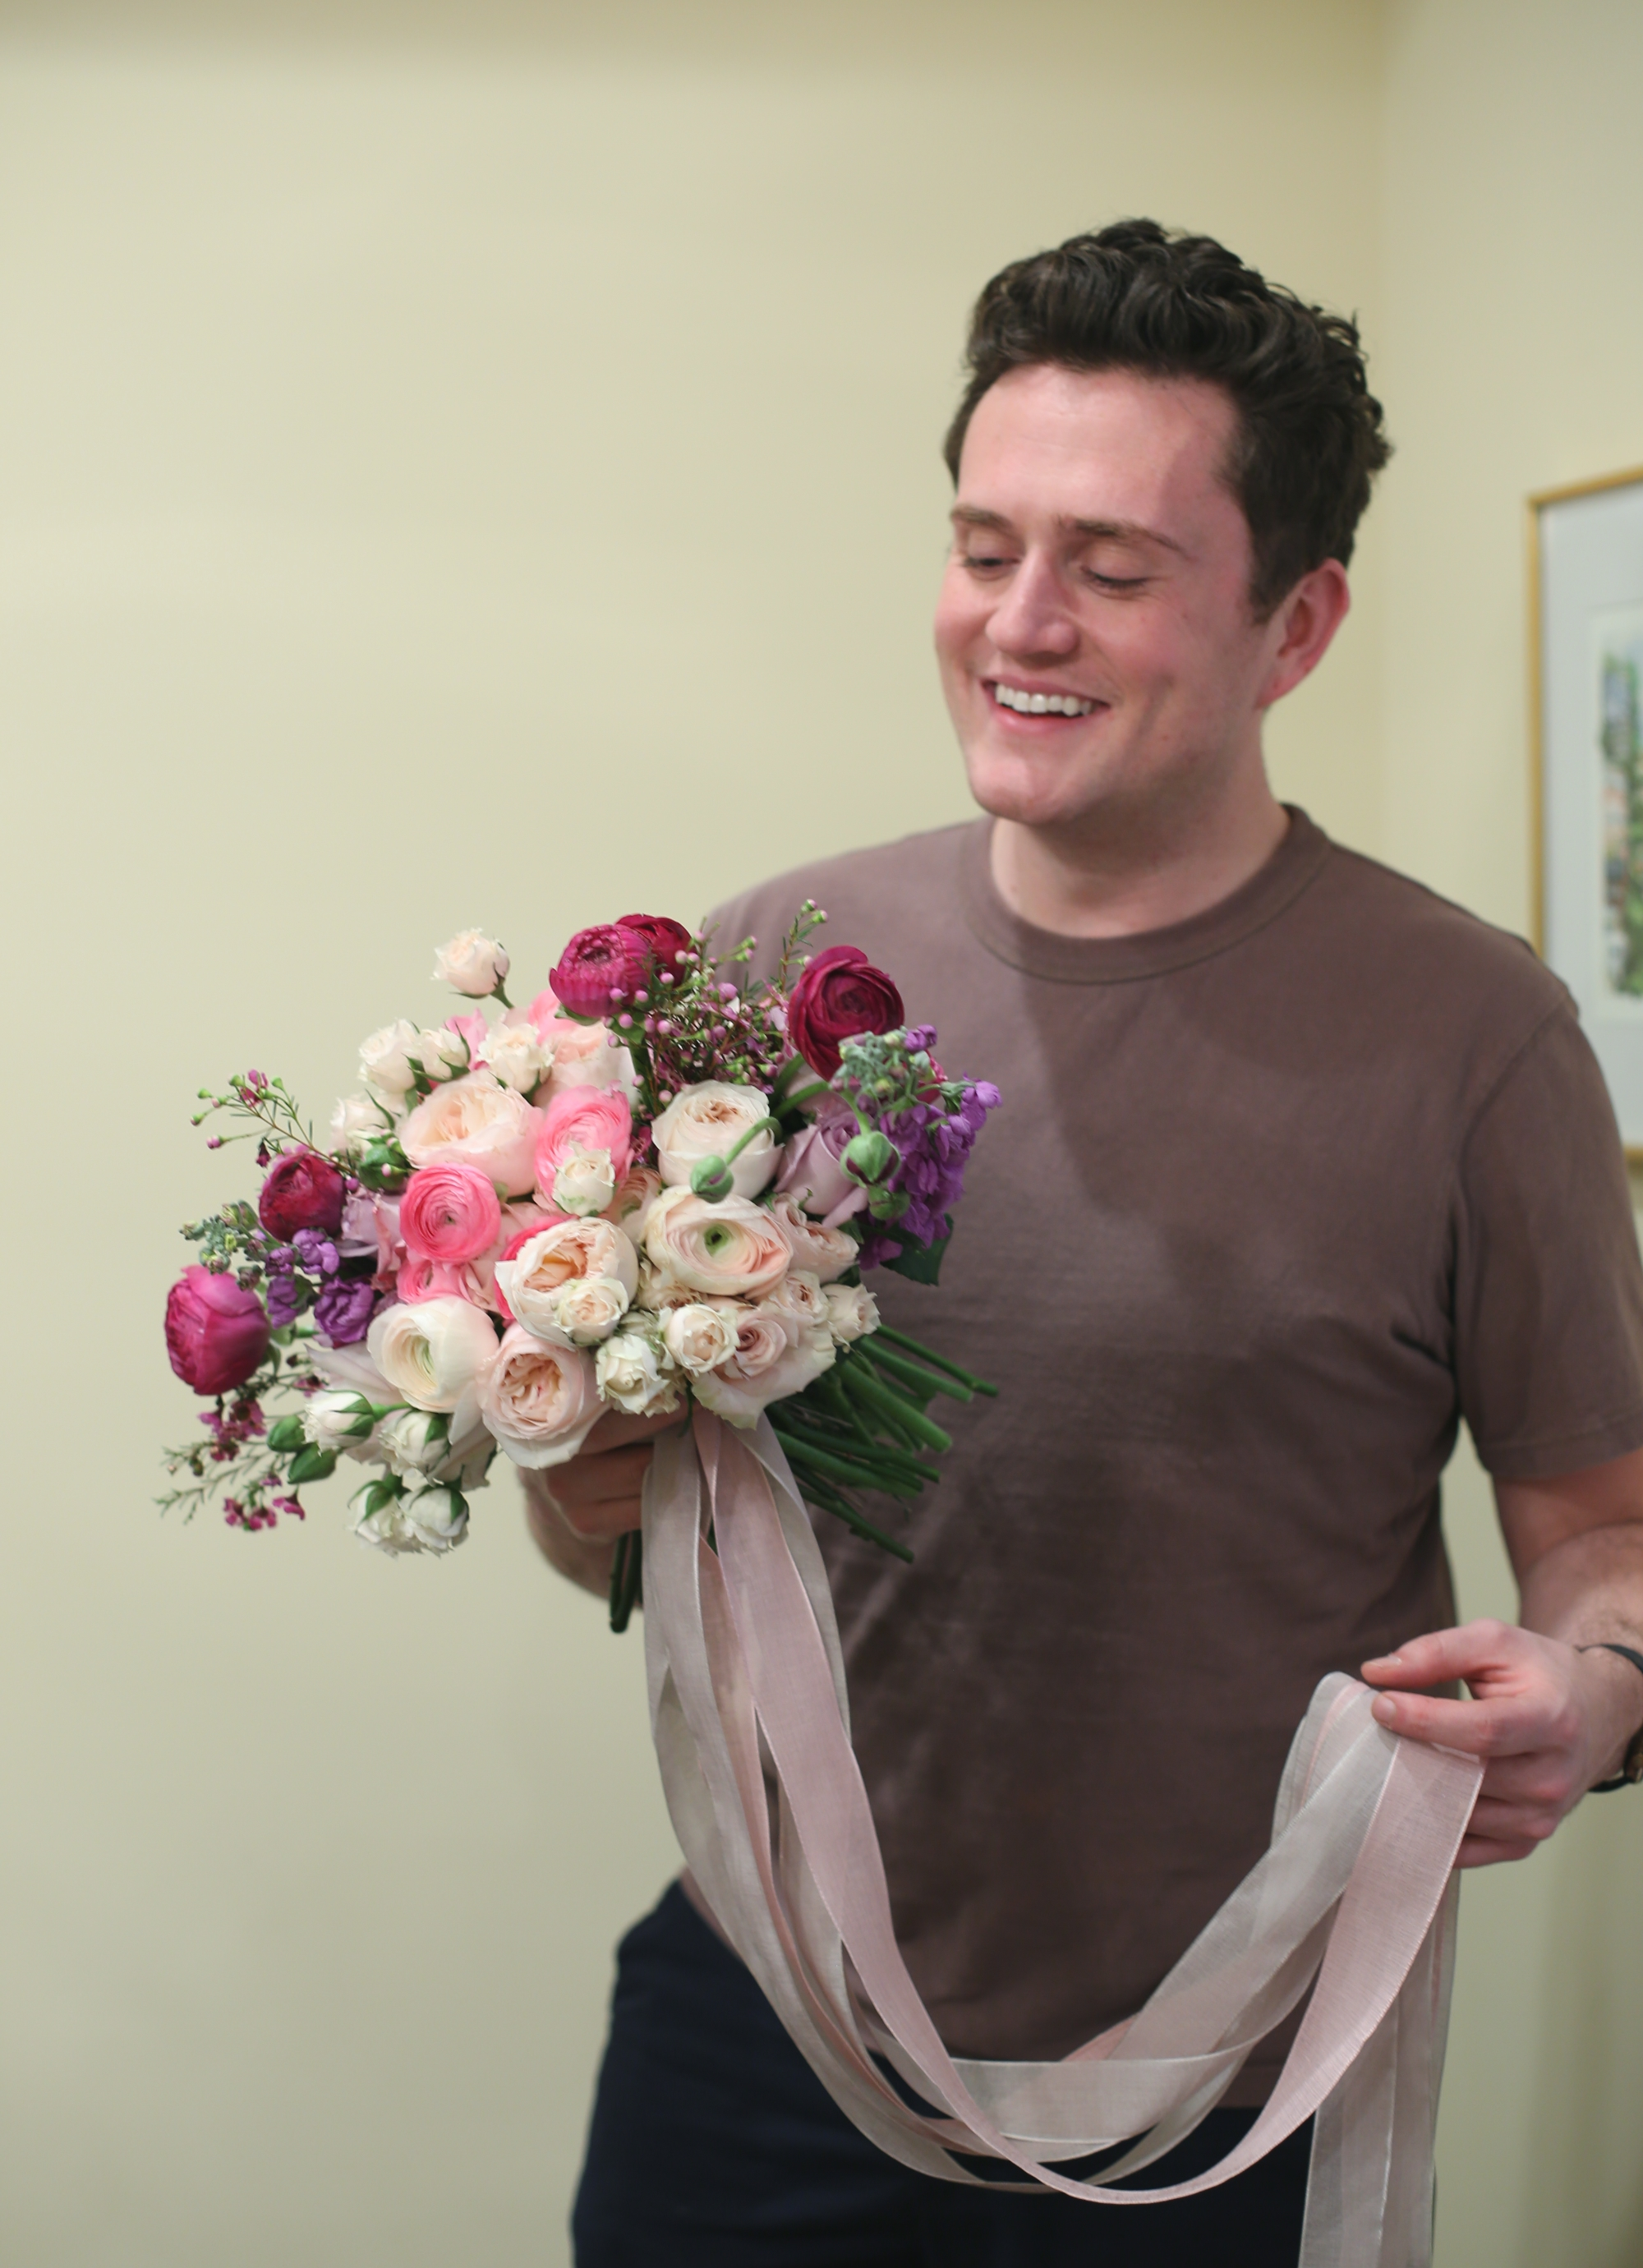 Bridal Bouquet crafted by Jonathan Faulks